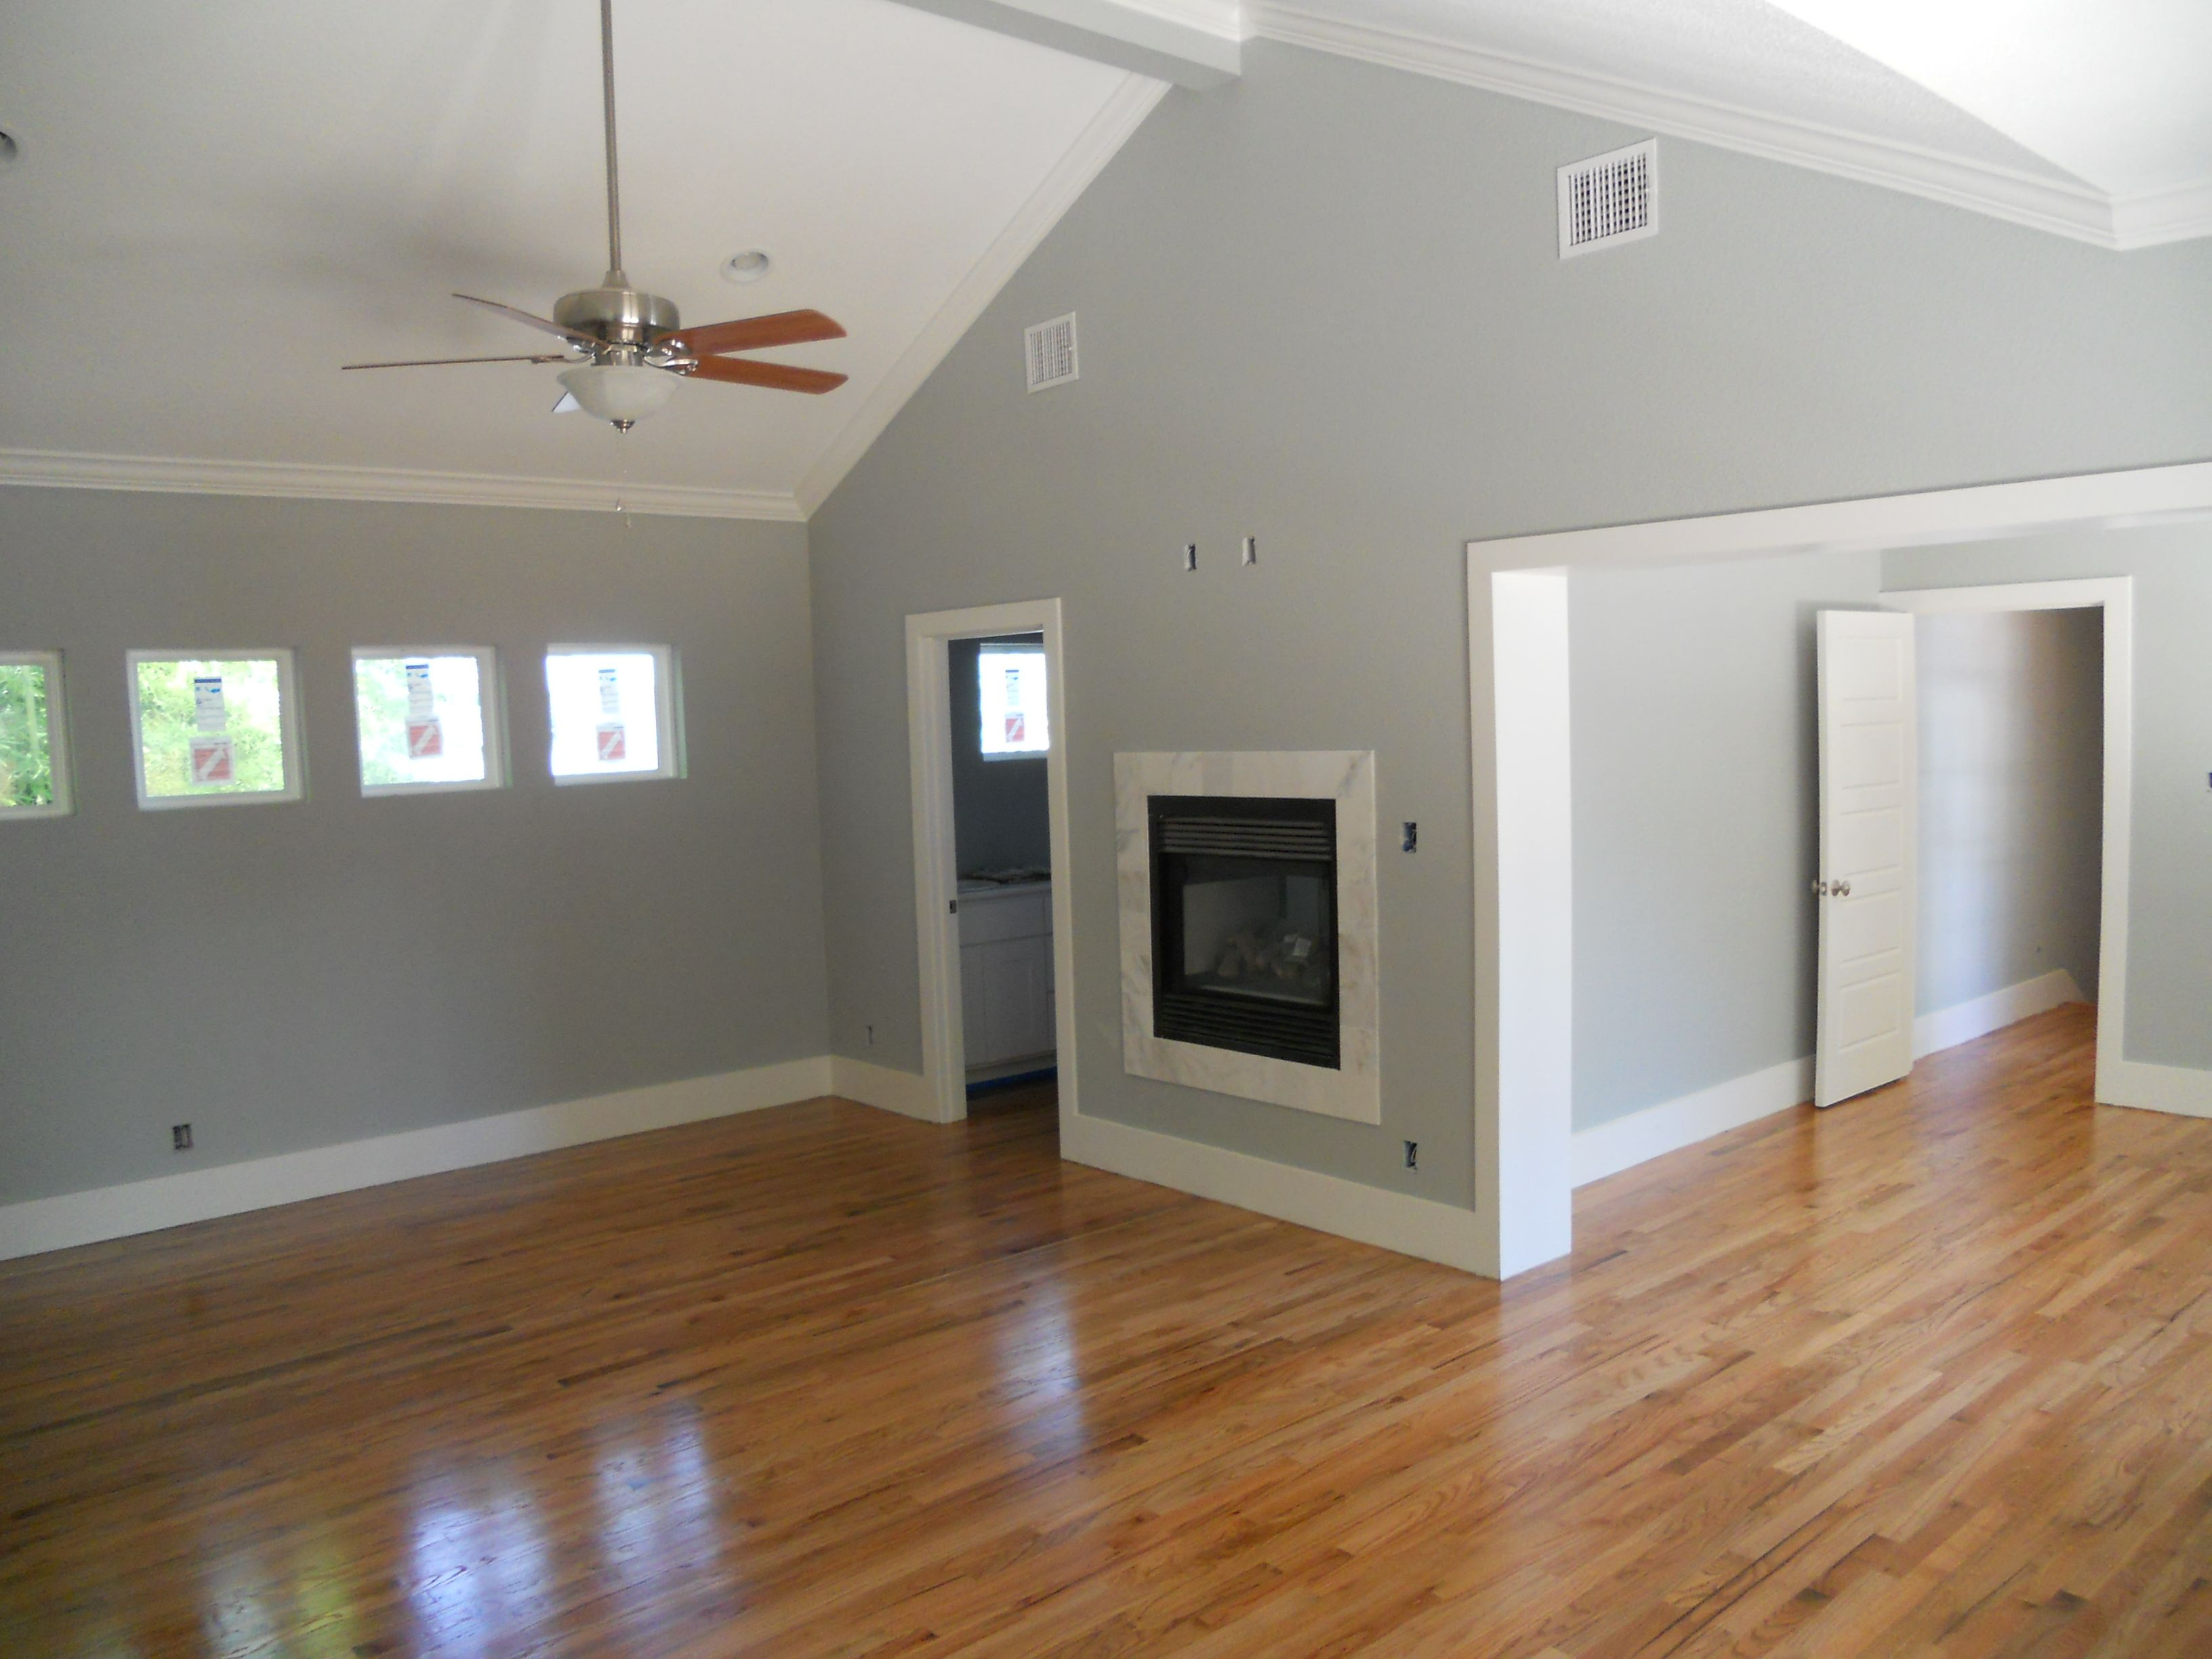 Color Of Wood Flooring With Grey Walls And White Trim.not Sure If Weu0026 Have  White Trim Or The Wood Color Trim.